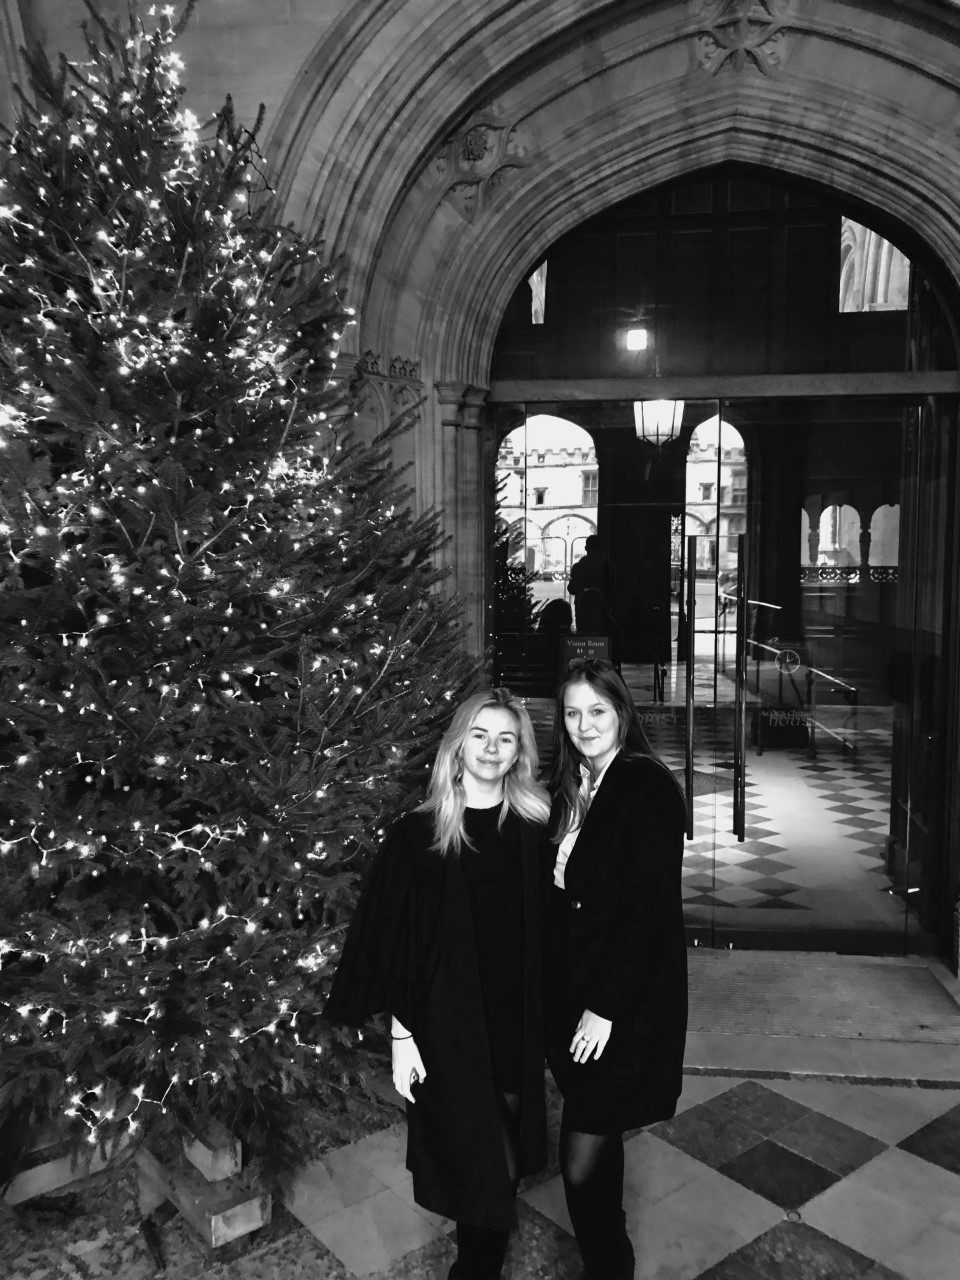 Beth Arrowsmith and Ruth Flame standing next to a Christmas tree